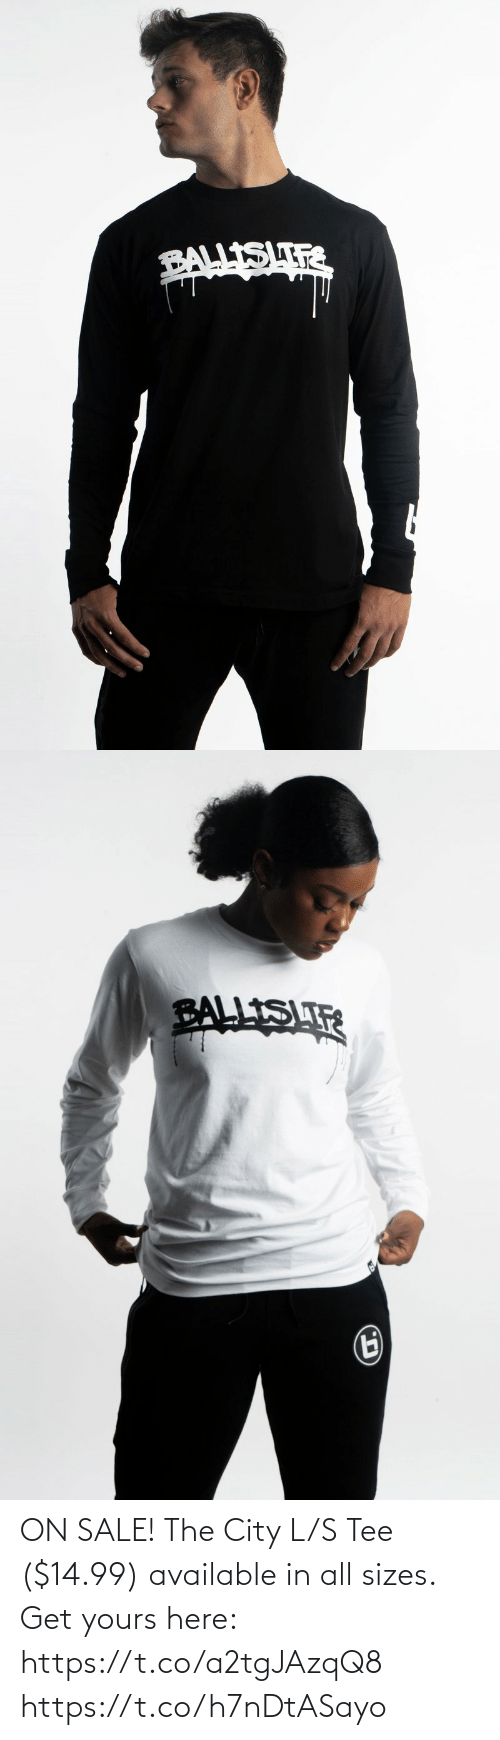 tee: ON SALE! The City L/S Tee ($14.99) available in all sizes.  Get yours here: https://t.co/a2tgJAzqQ8 https://t.co/h7nDtASayo